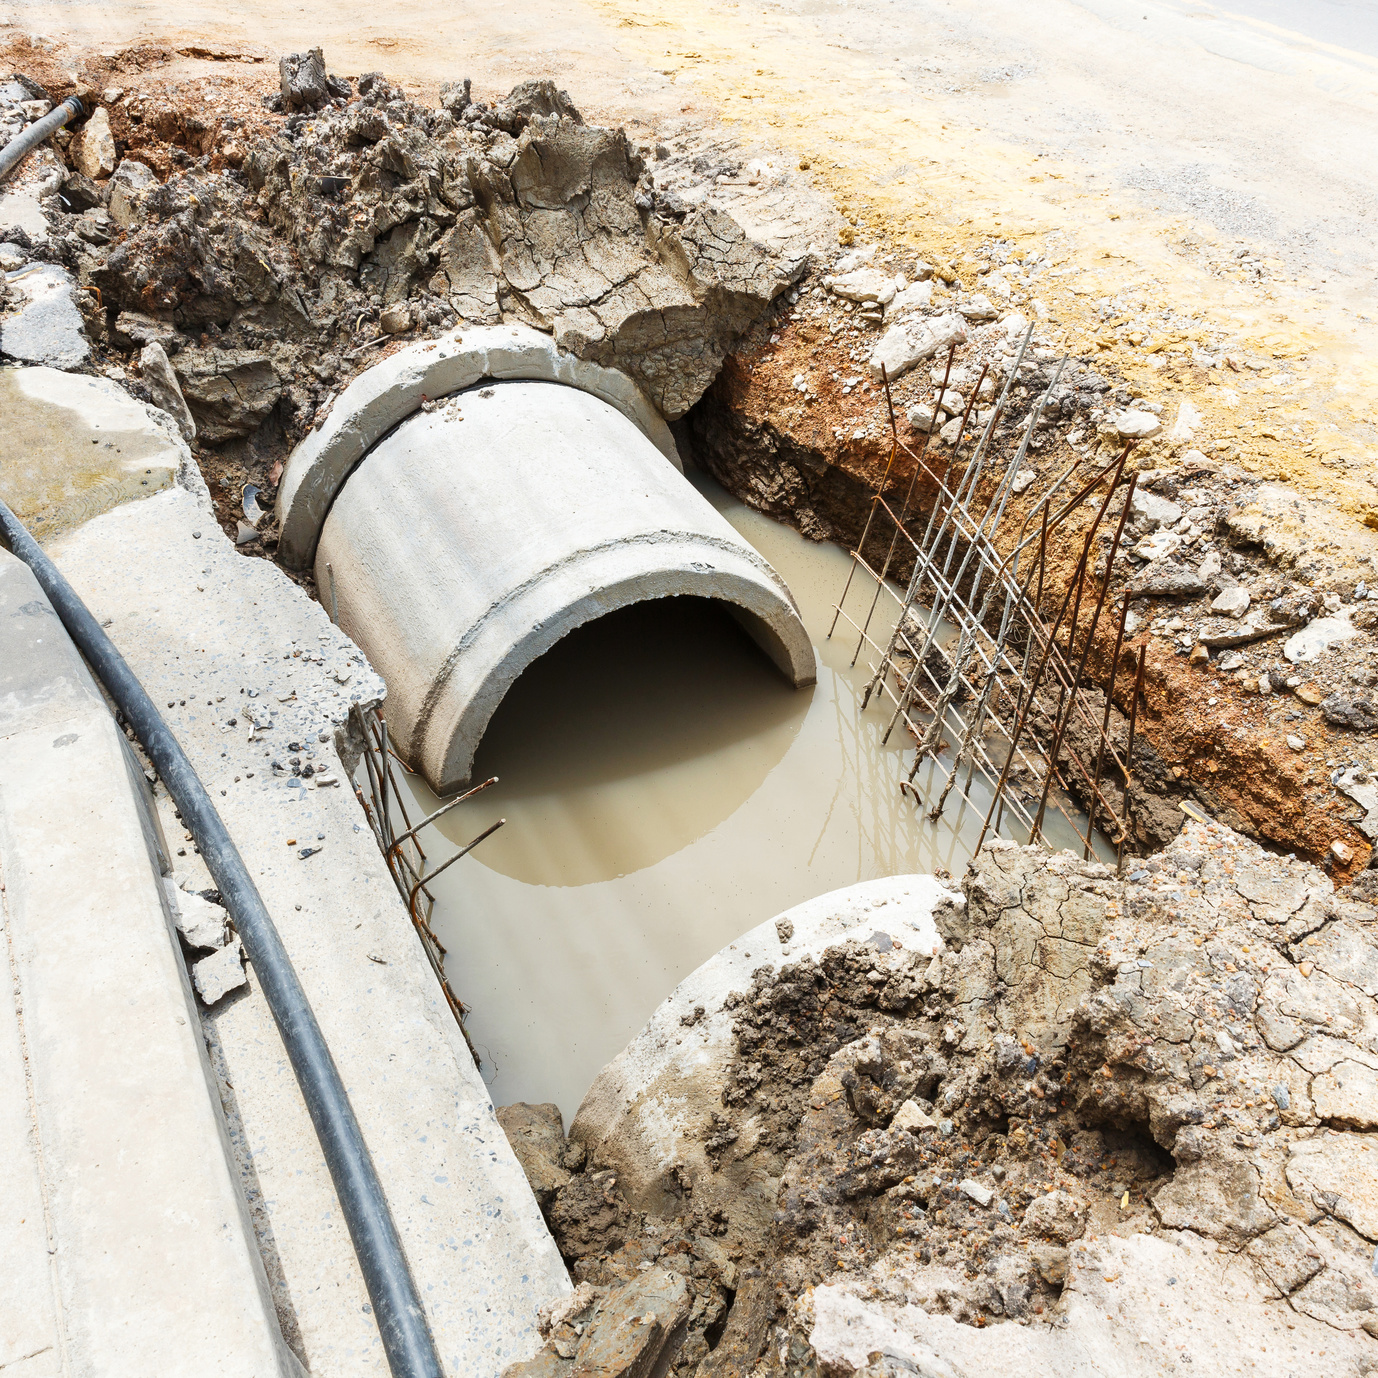 Don T Dig Out Your Sewer Pipes Instead Make The Most Of